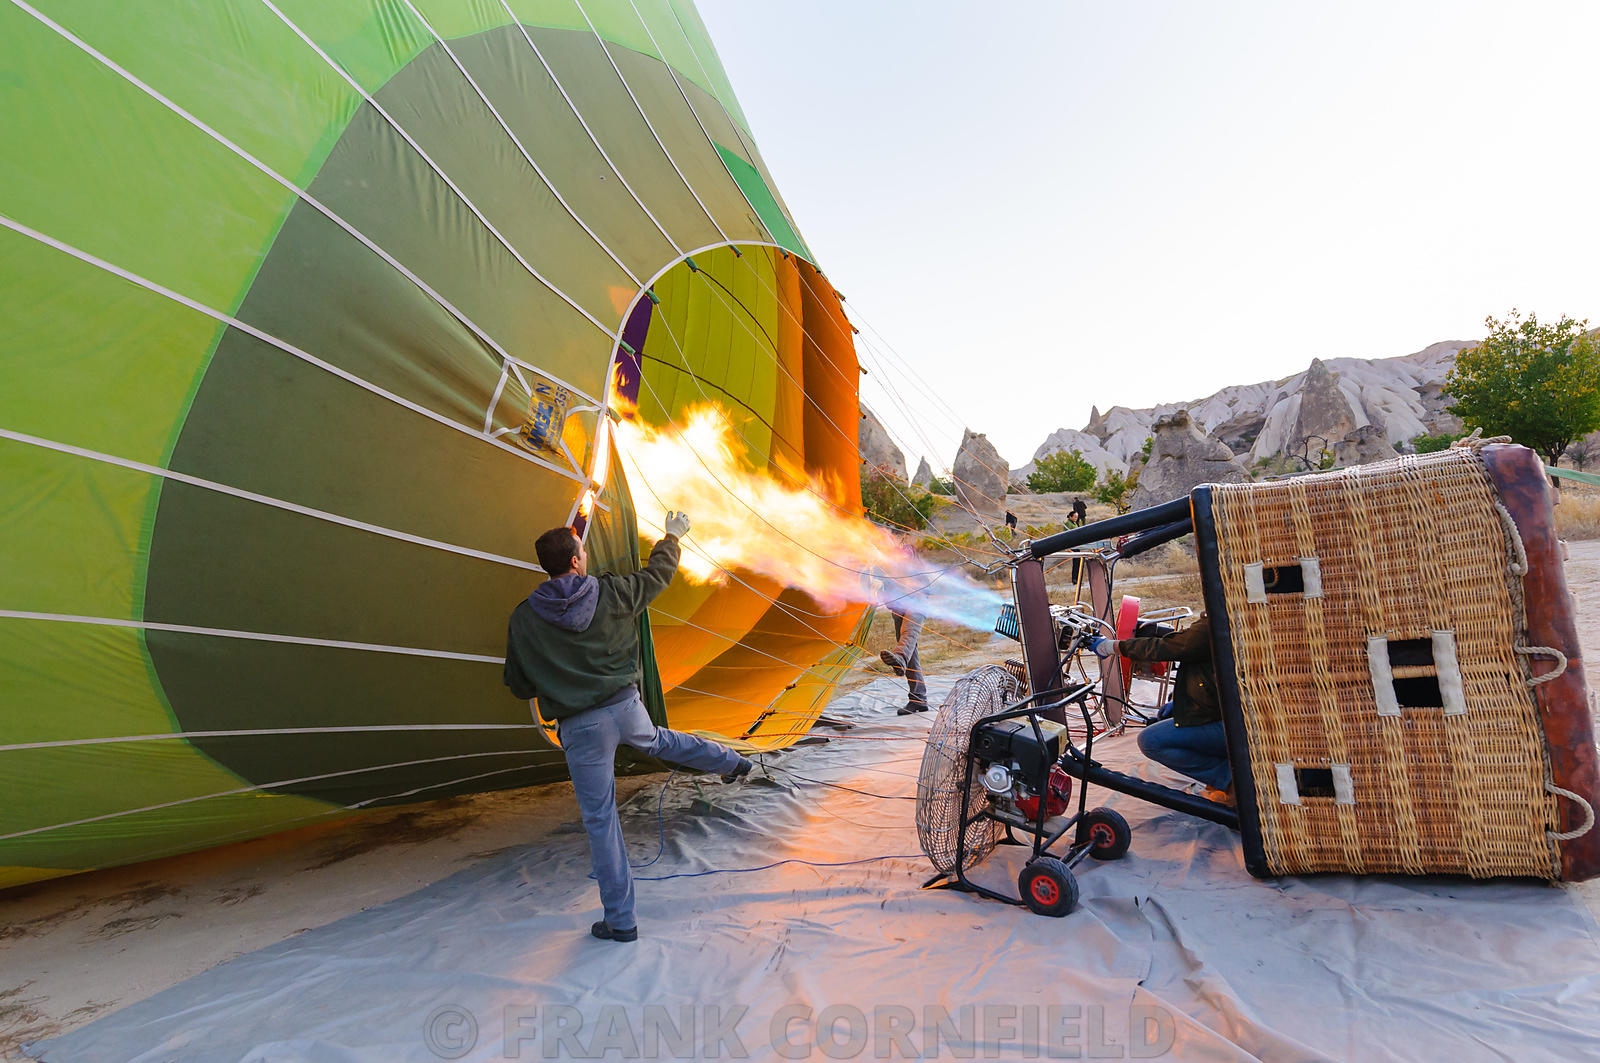 Hot air balloon being prepared for takeoff.